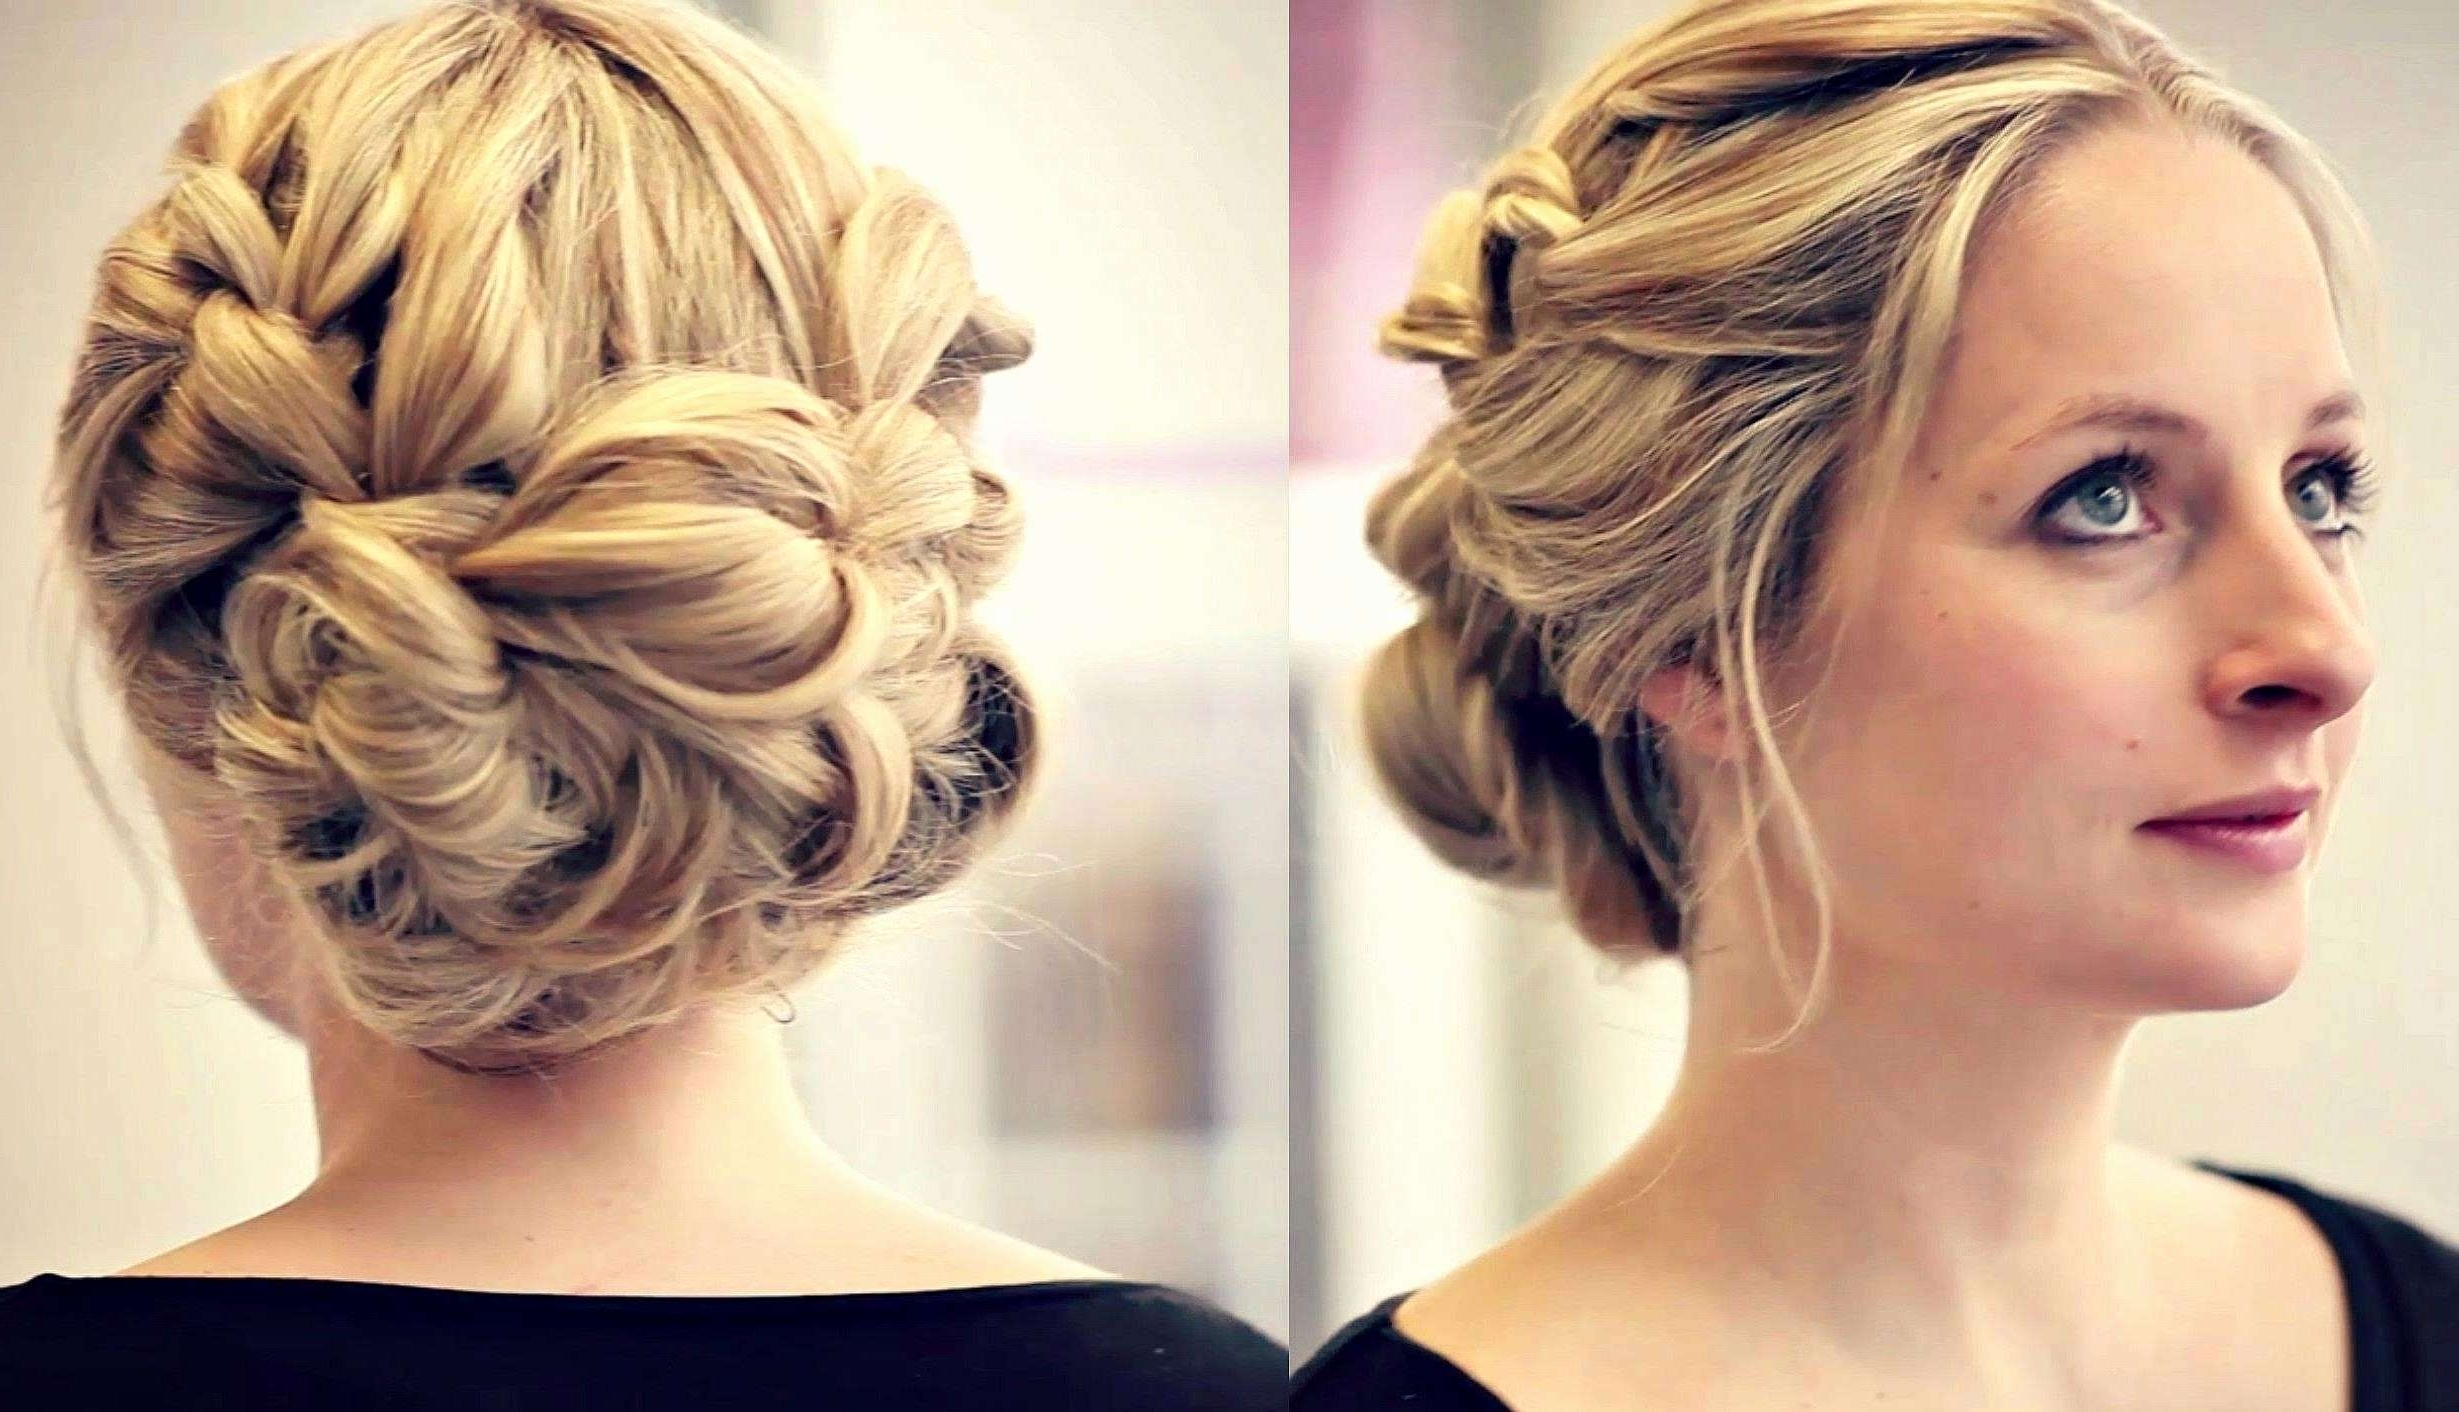 Wedding Hairstyles For Short Kinky Hair Awesome Emejing Short Hair Within 2018 Wedding Hairstyles For Short Kinky Hair (View 15 of 15)